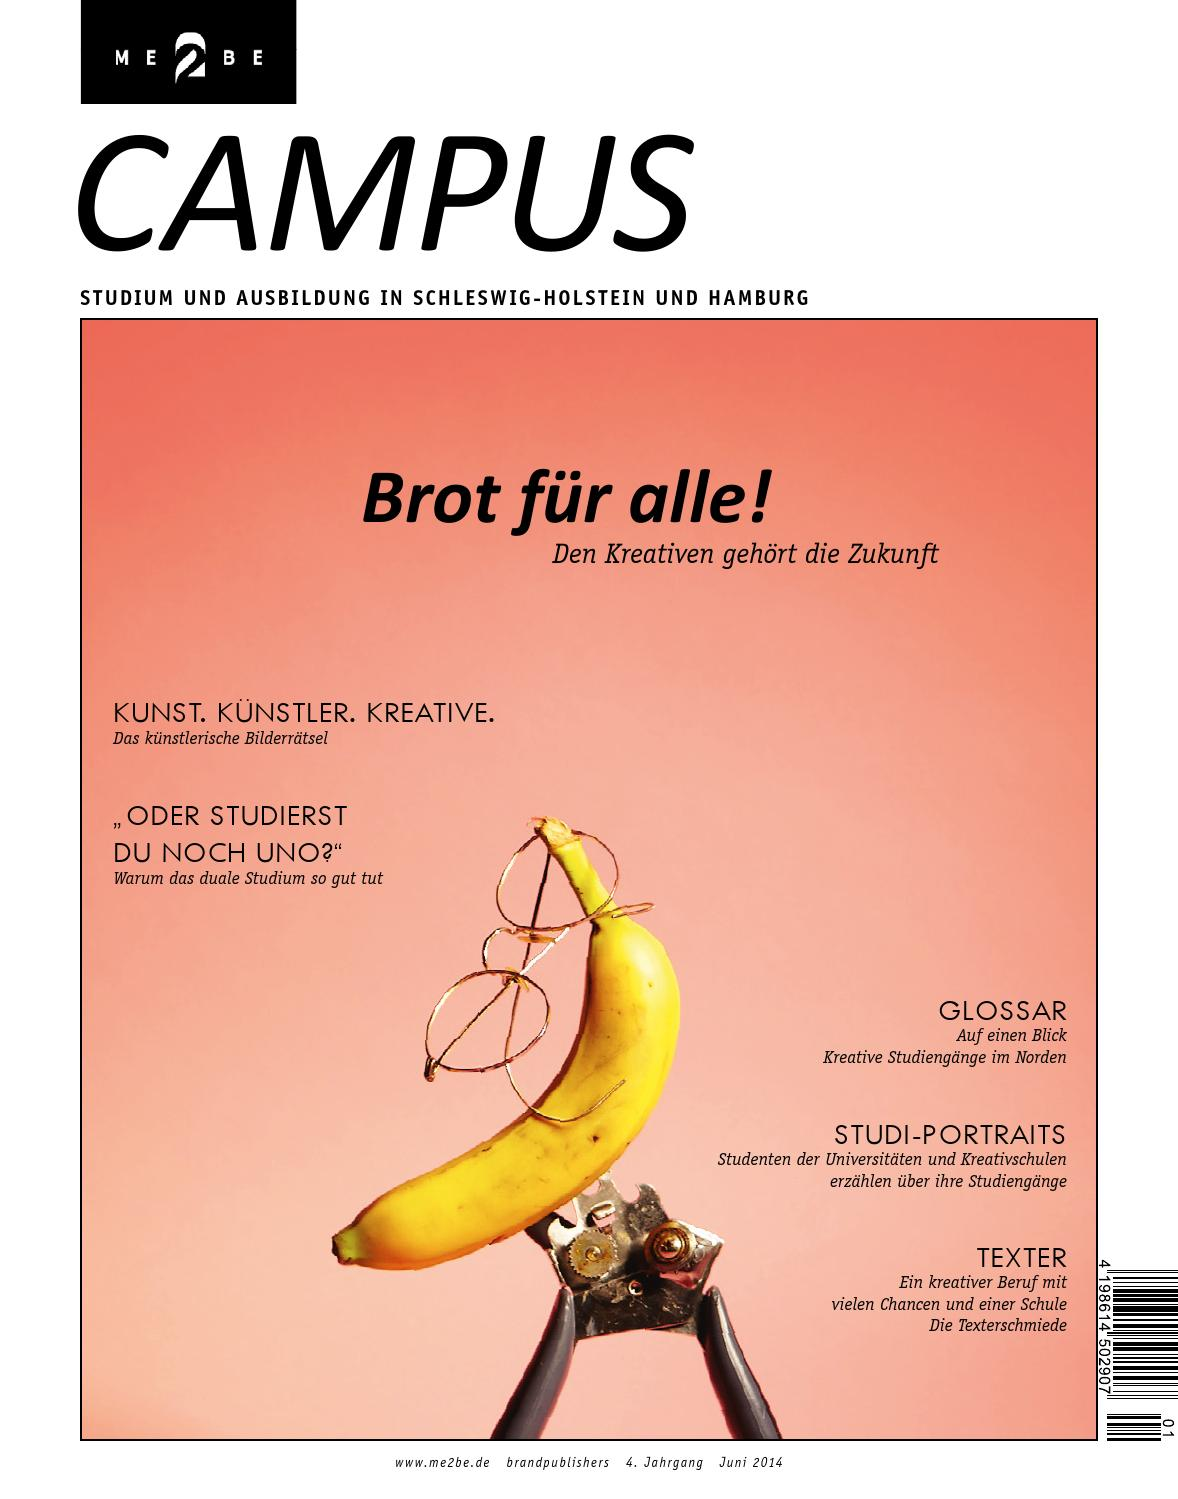 ME2BE CAMPUS inkl. NØRD TIMES by ME2BE - issuu